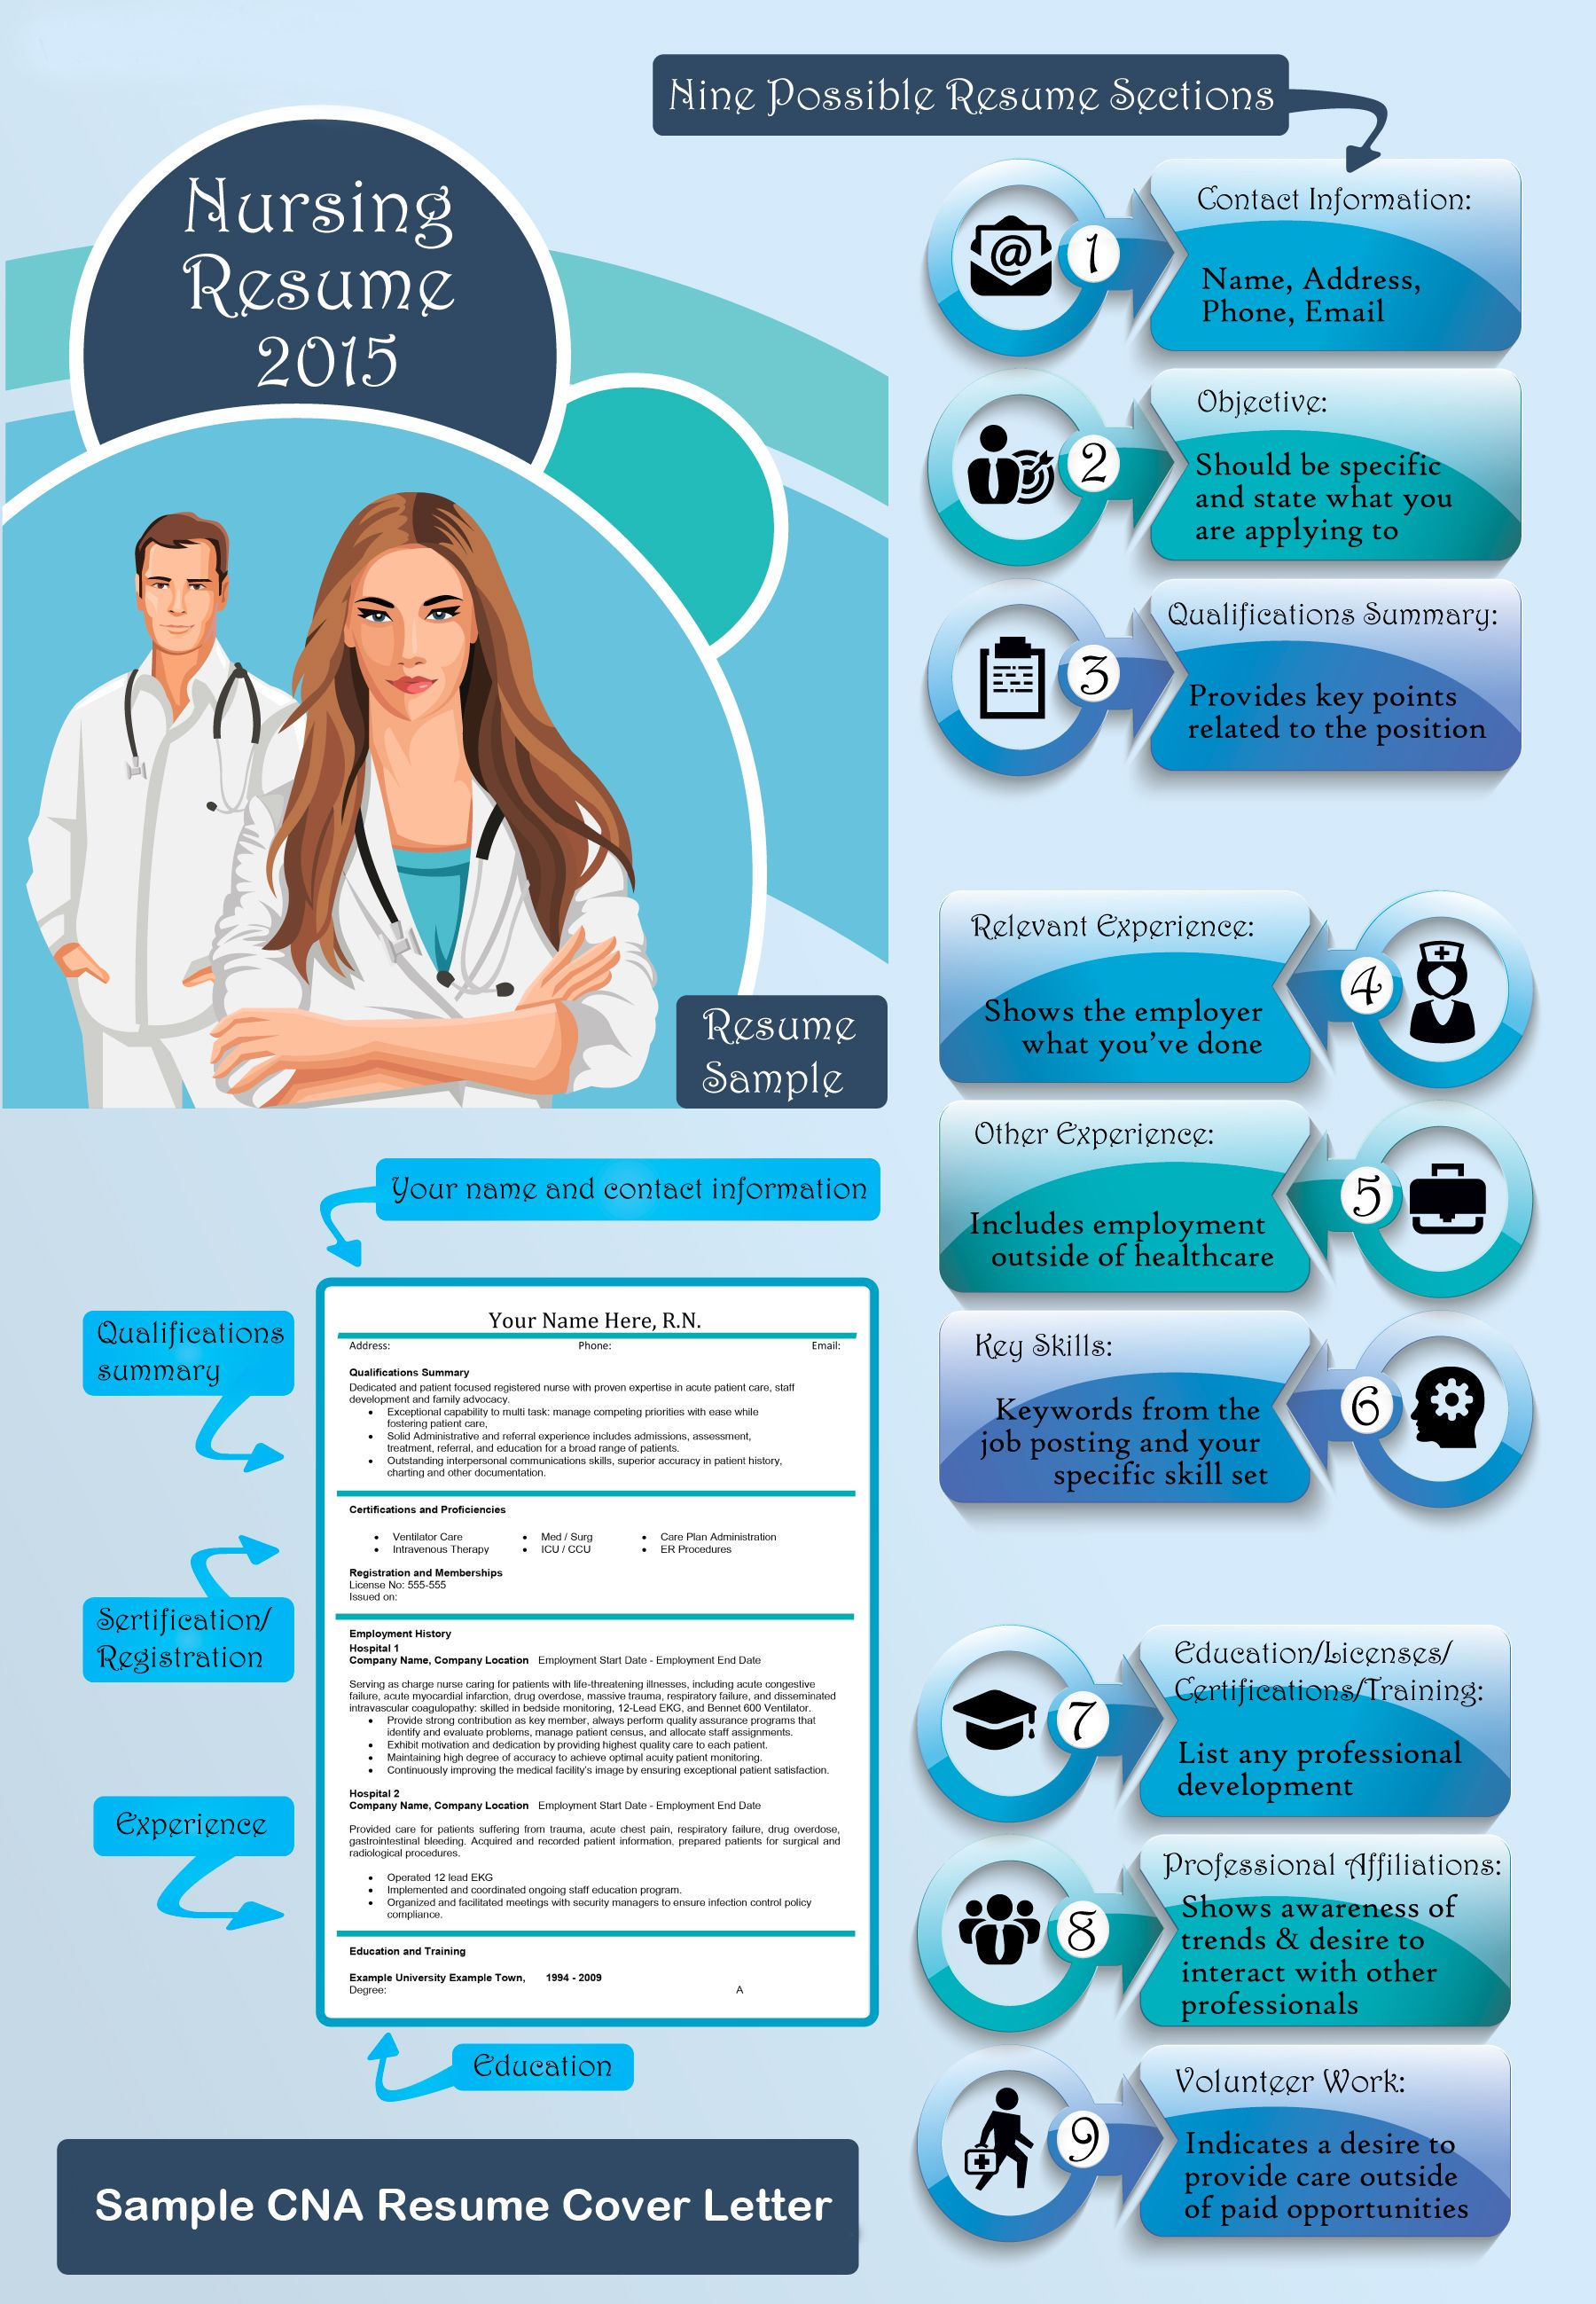 Sample Cna Resume Cover Letter  Resume Cover Letters Certified